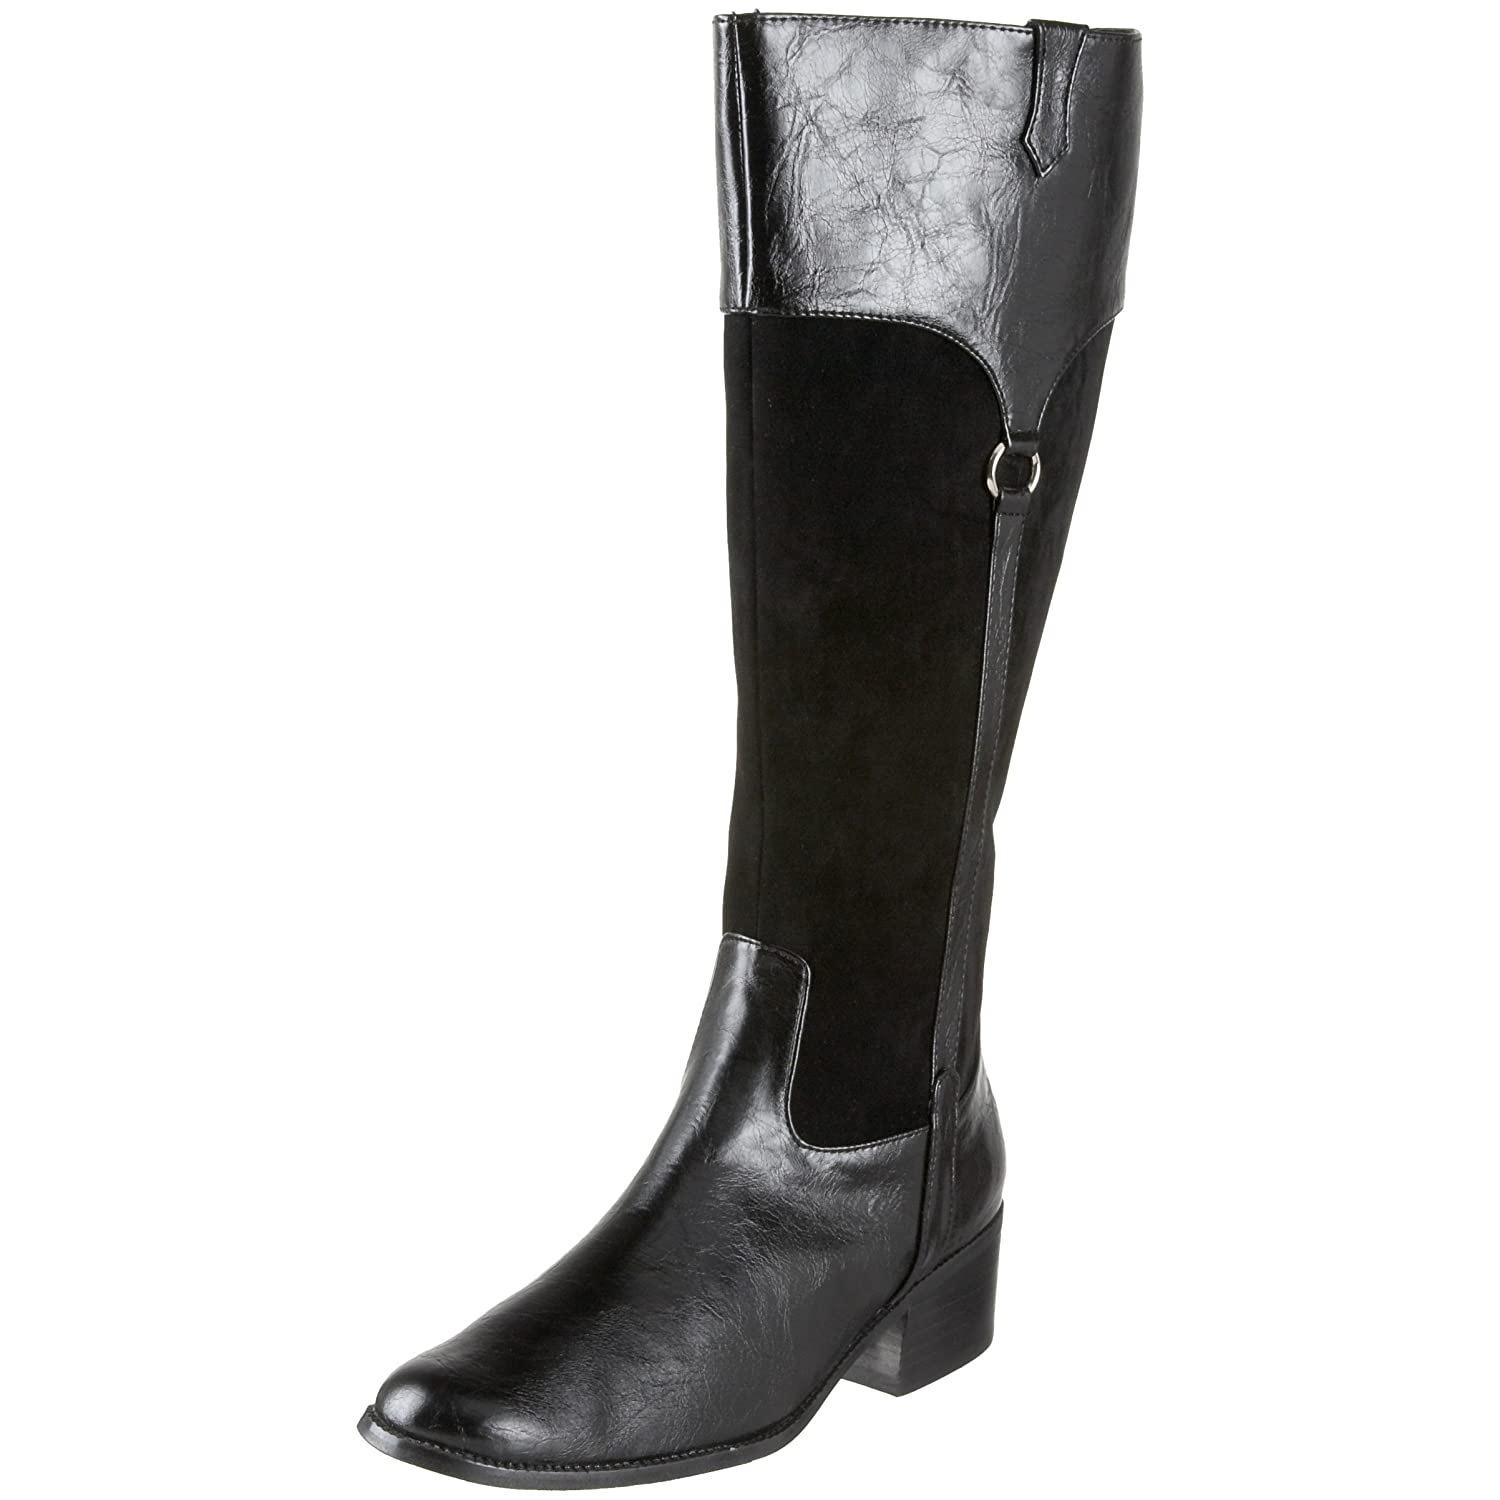 Annie Shoes - Rocco Knee-High Boot :  knee high knee high boots shoes womens shoes